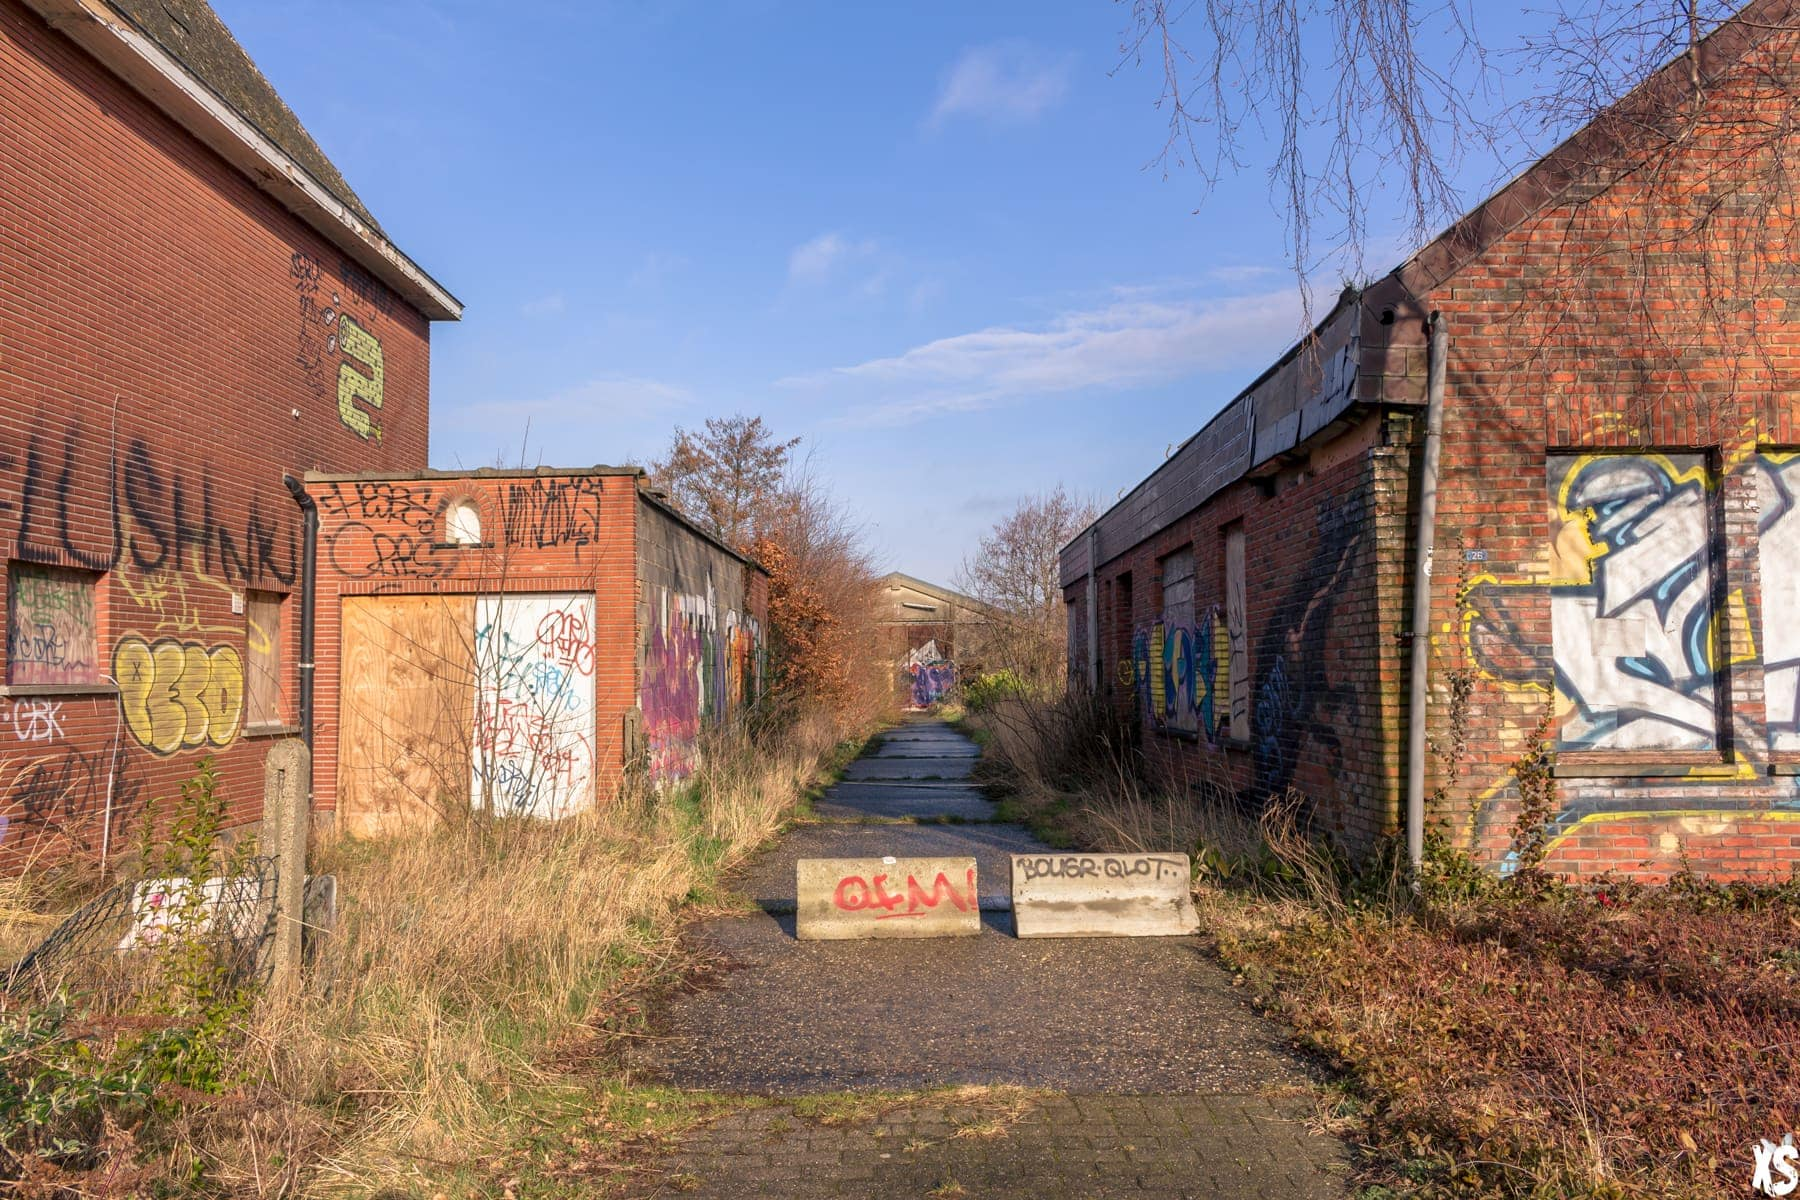 Abandoned City Of Doel : https://urbexsession.com/en/abandoned-city-of-doel